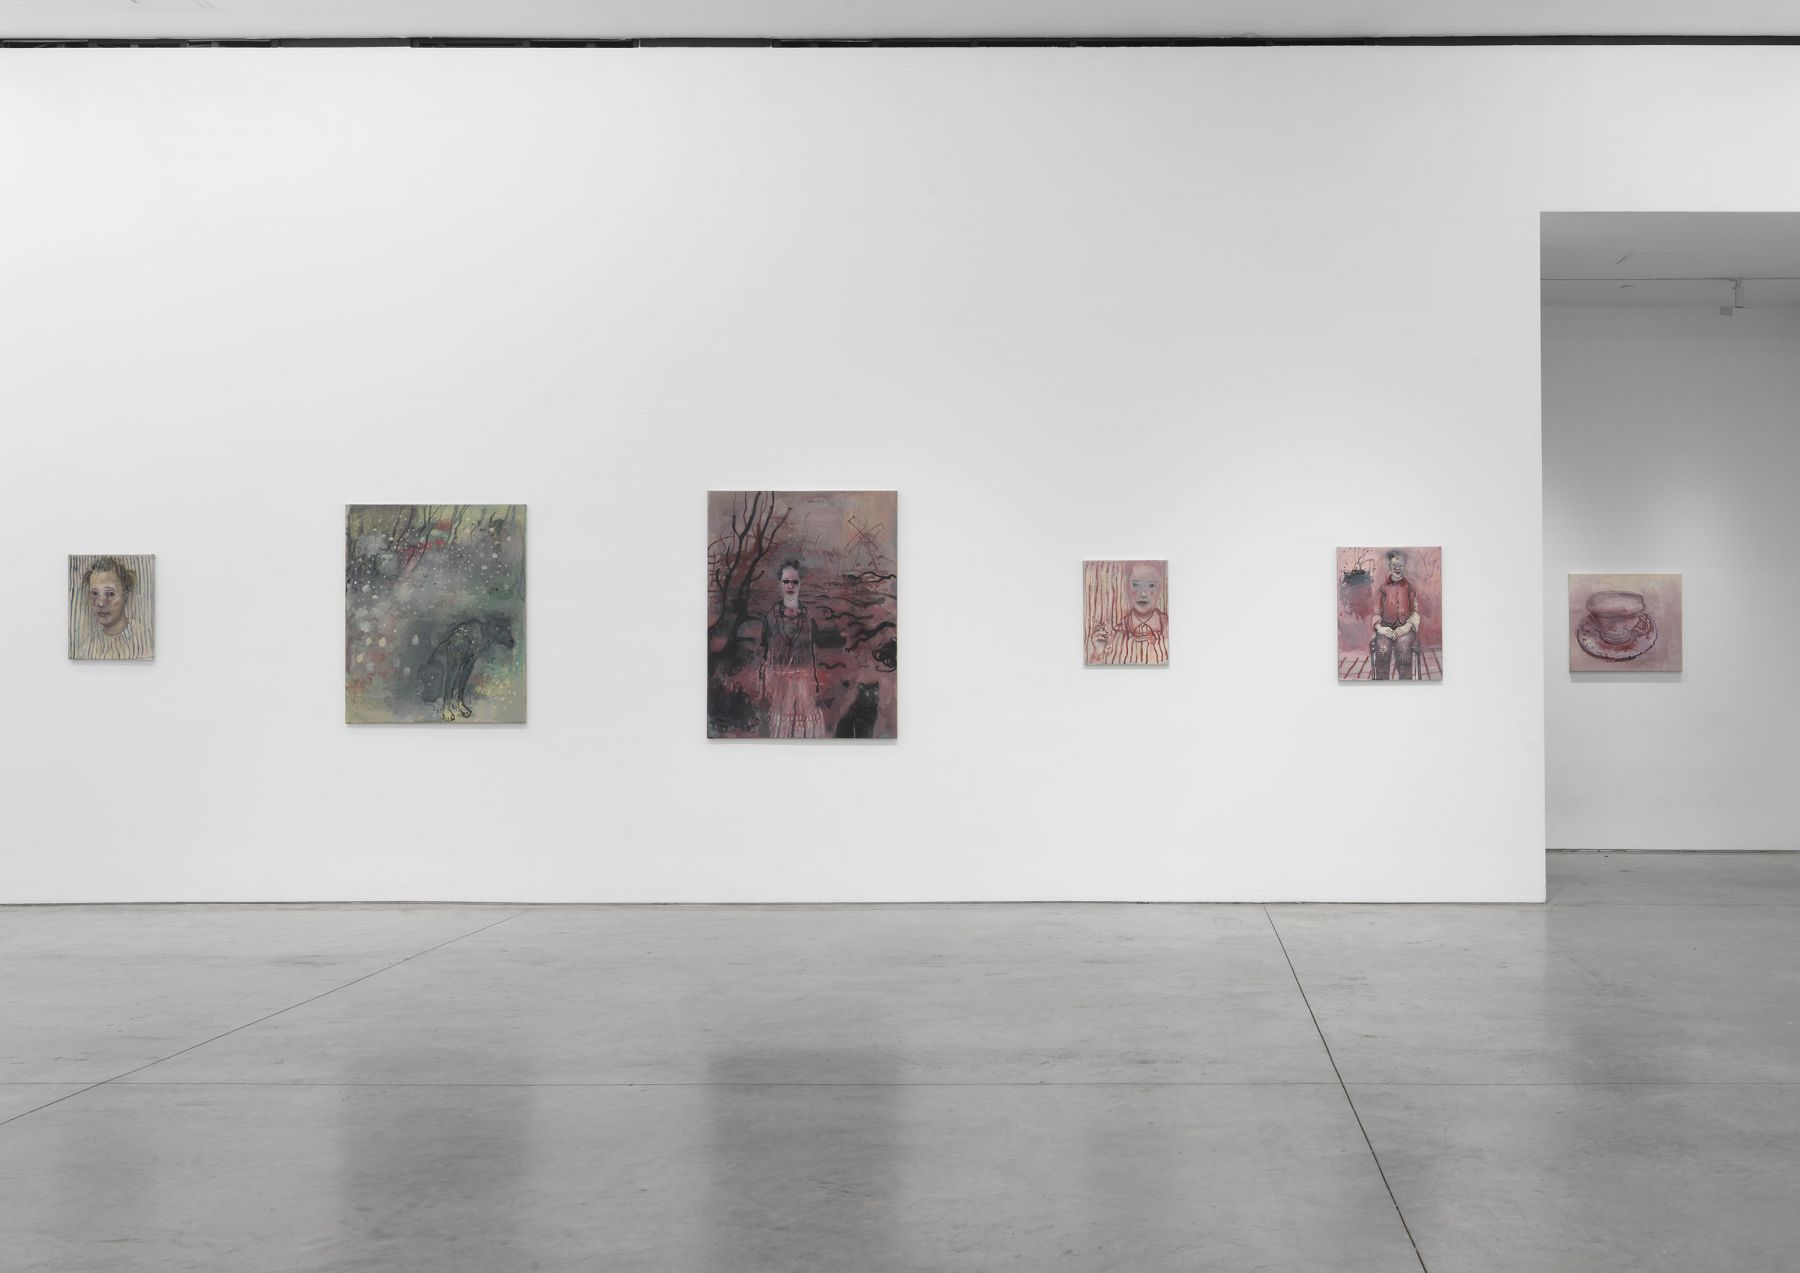 Places and Beings (Installation view), Marianne Boesky Gallery, New York, 2019